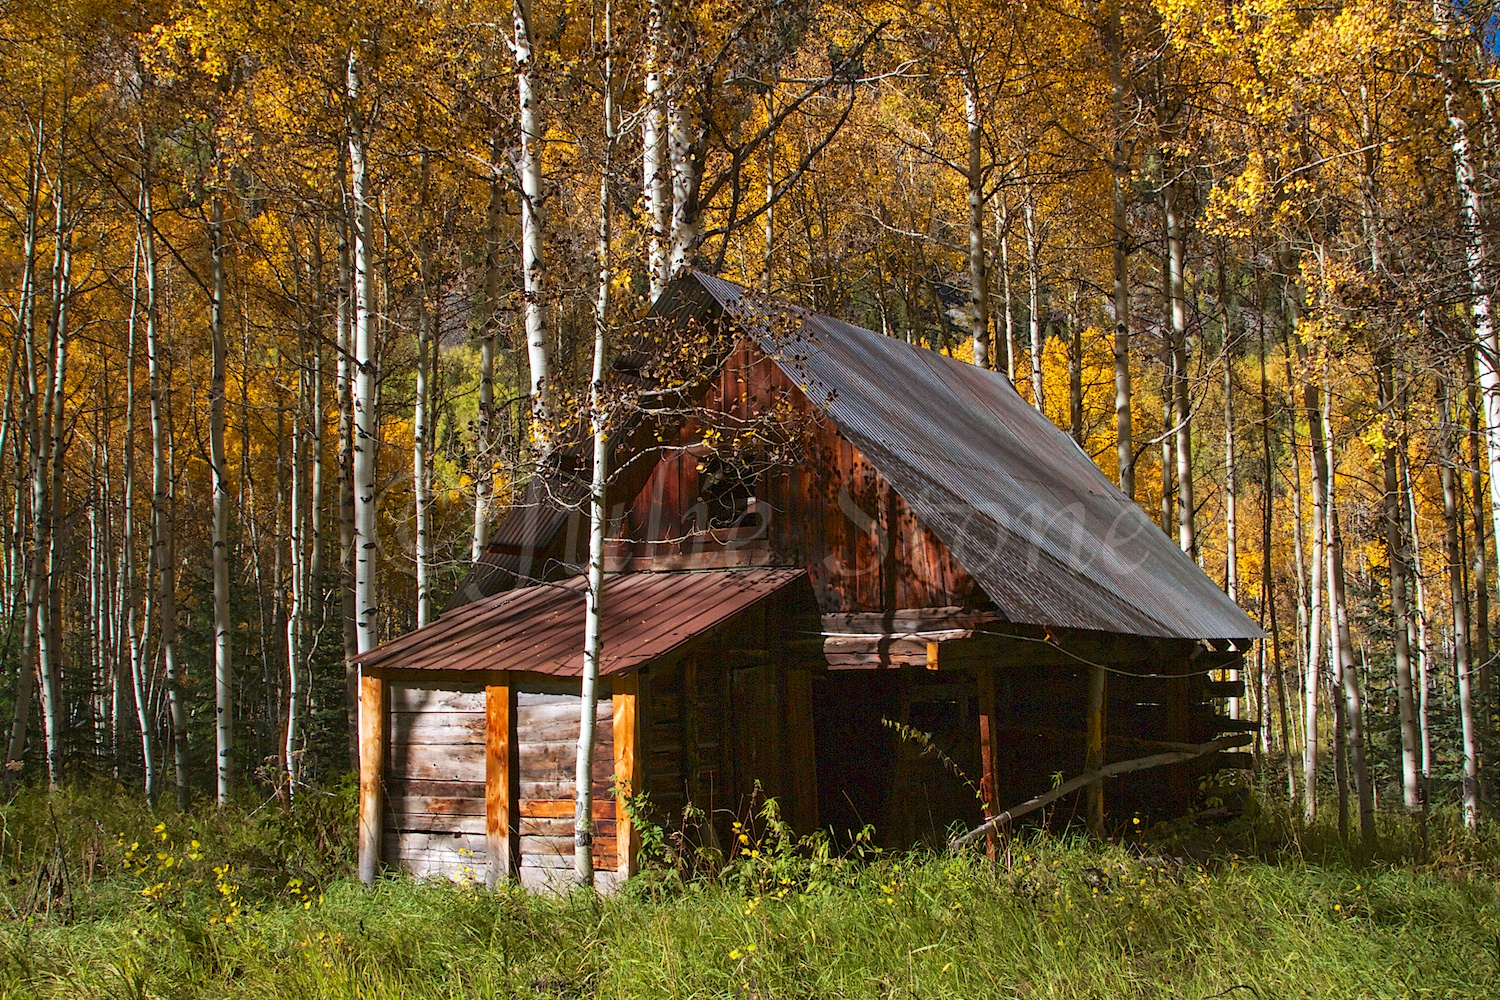 CRYSTAL GHOST TOWN FALL 2014